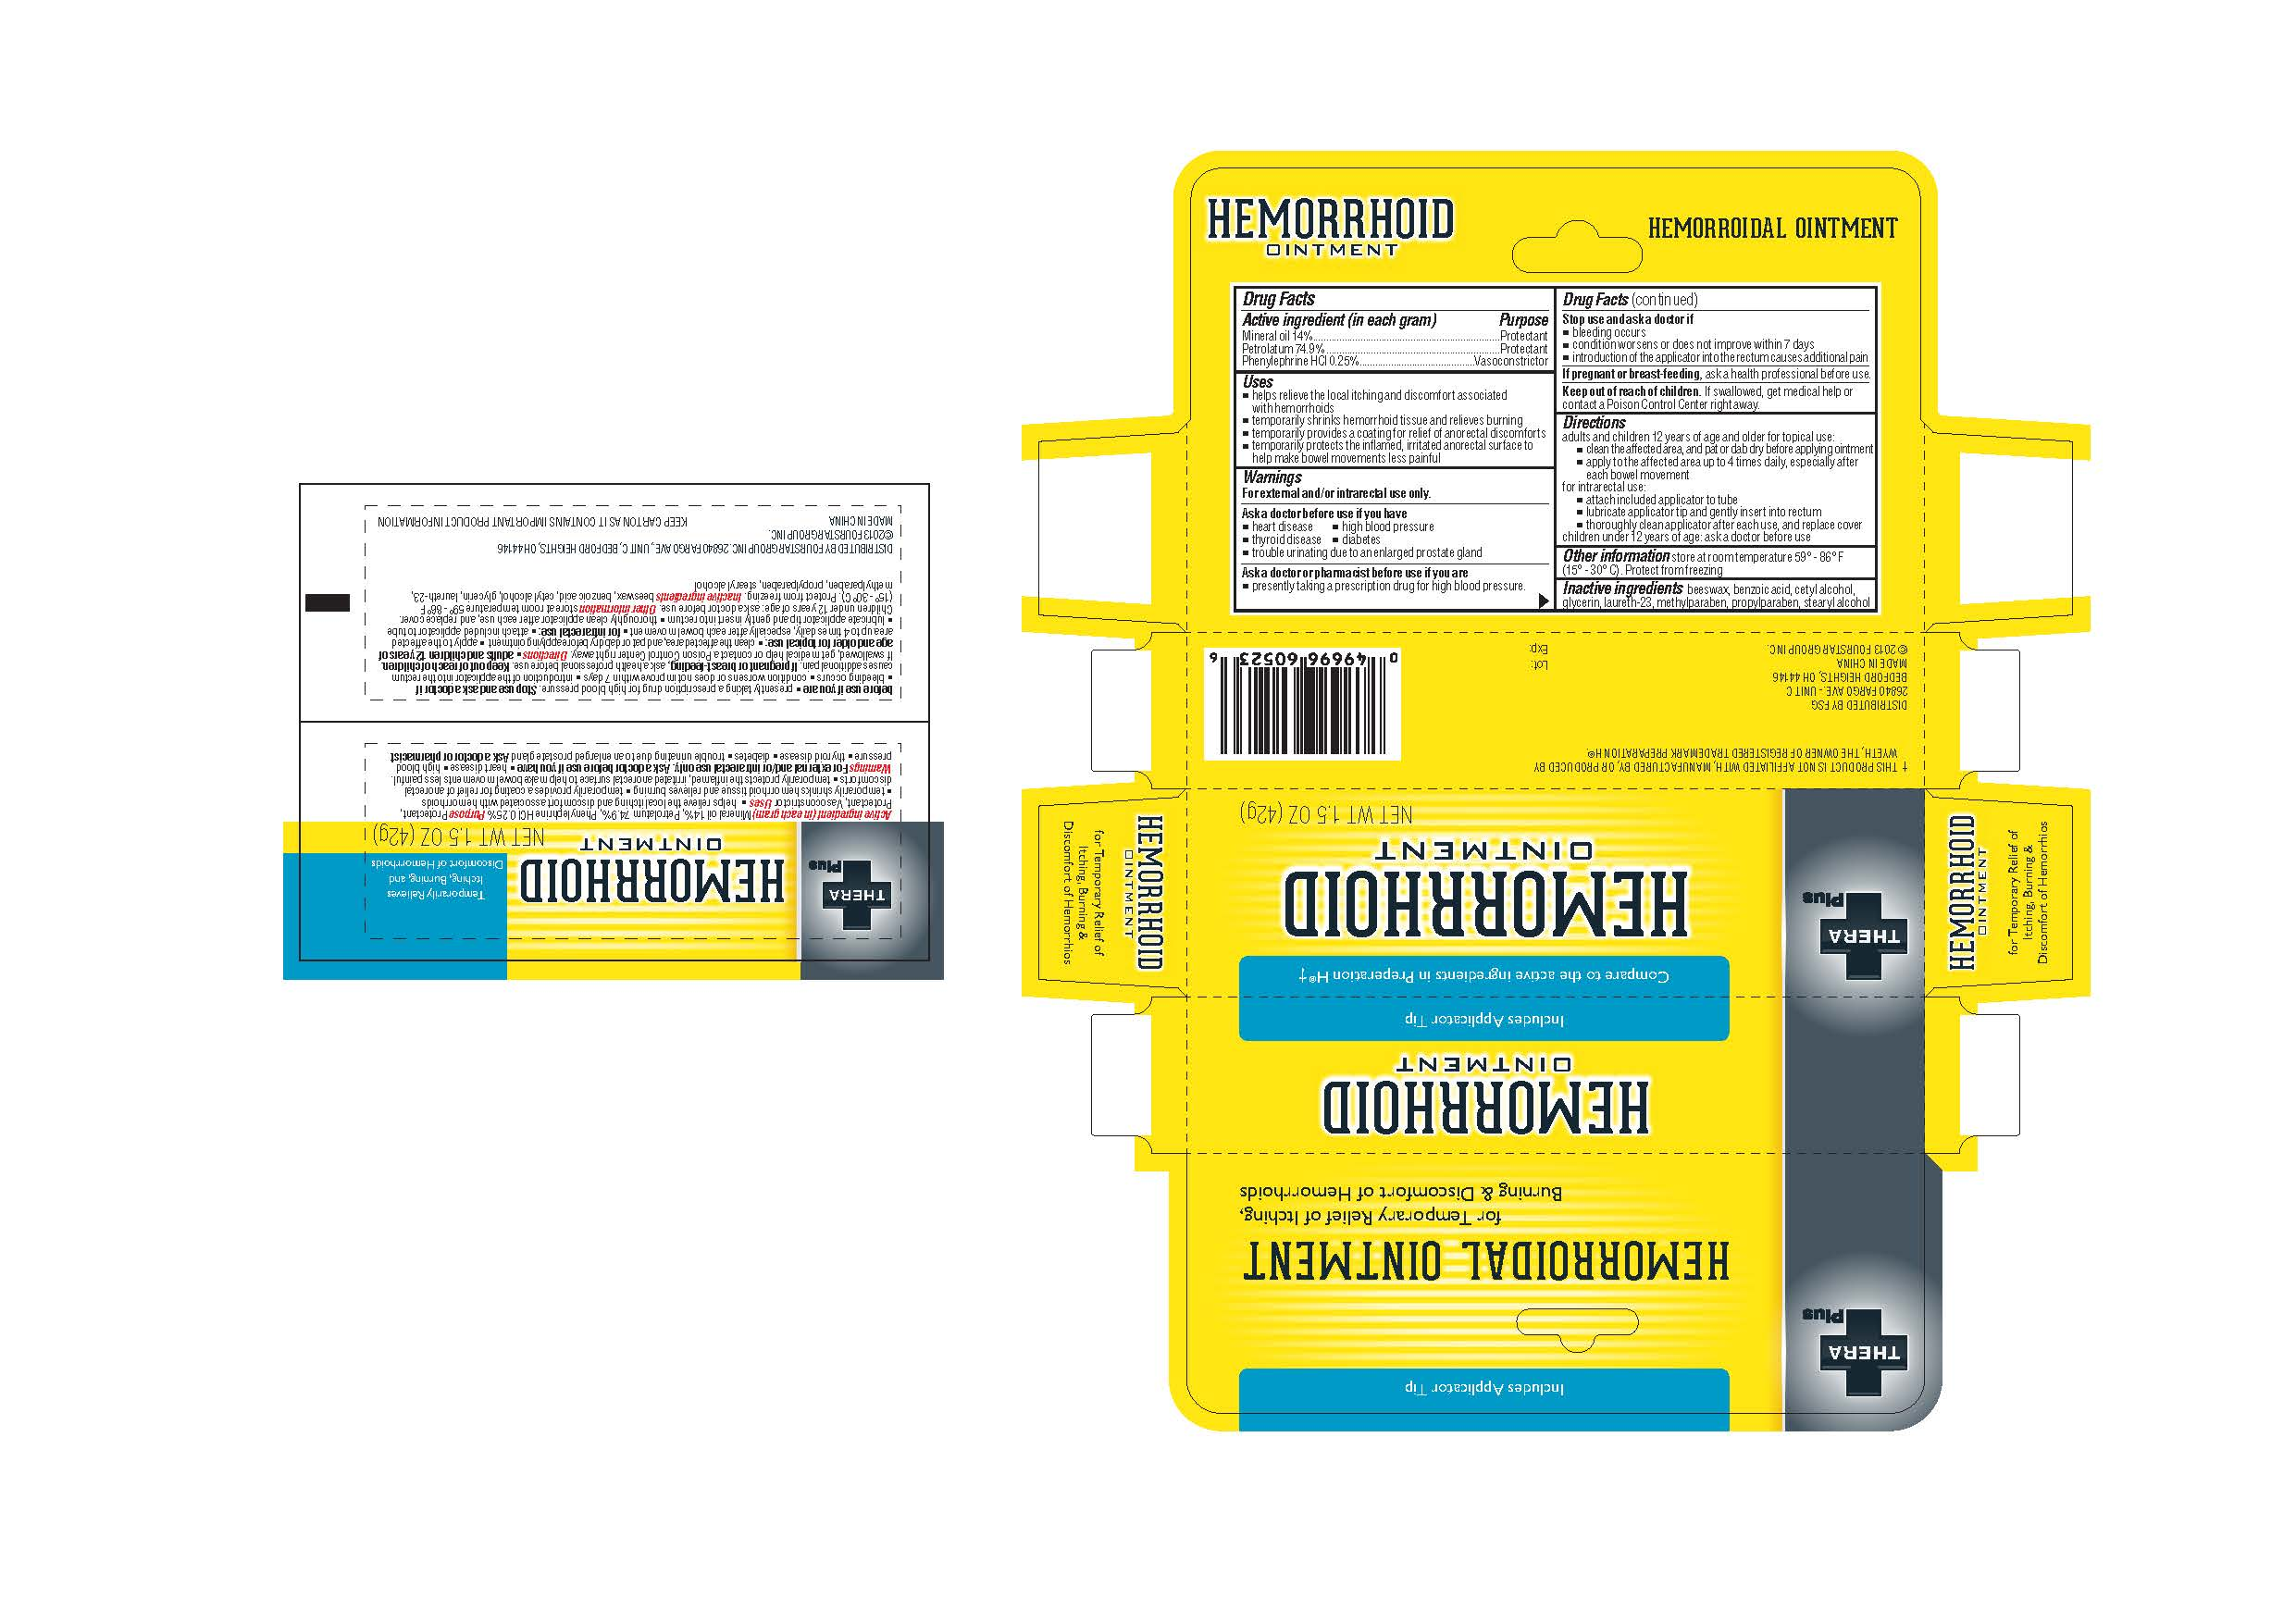 Theraplus Plus (Phenylephrine Hci) Ointment [Zhejiang Jingwei Pharmaceutical Co., Ltd.]